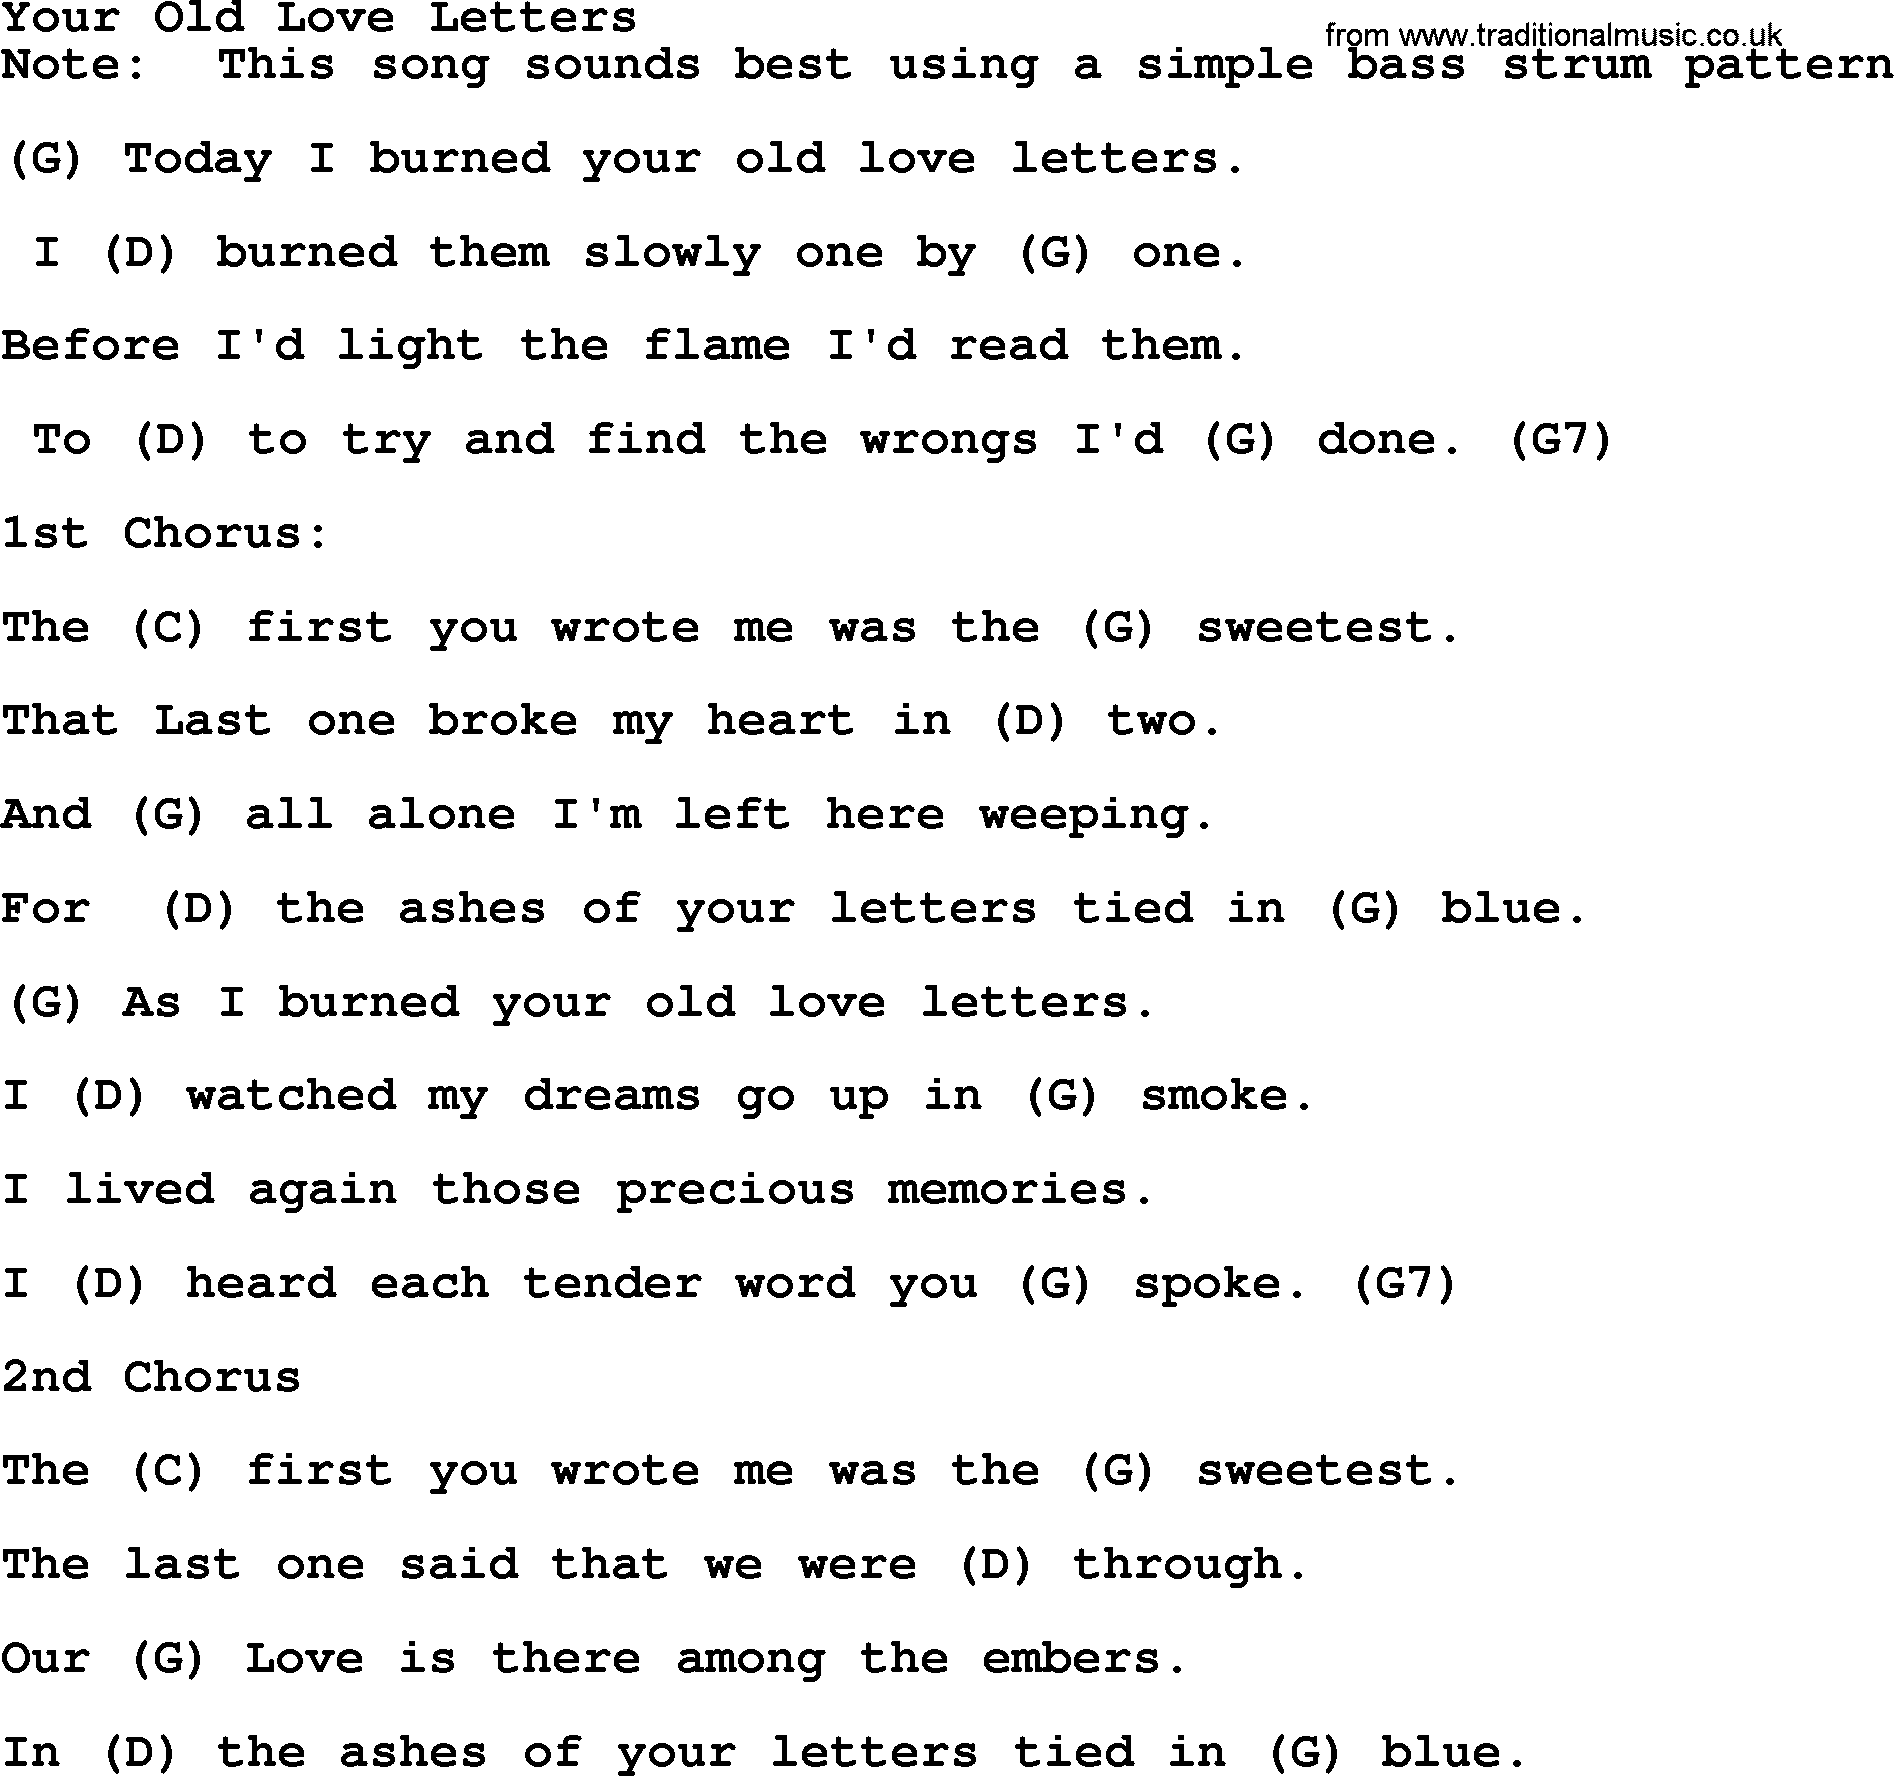 Bluegrass Song: Your Old Love Letters, Lyrics And Chords